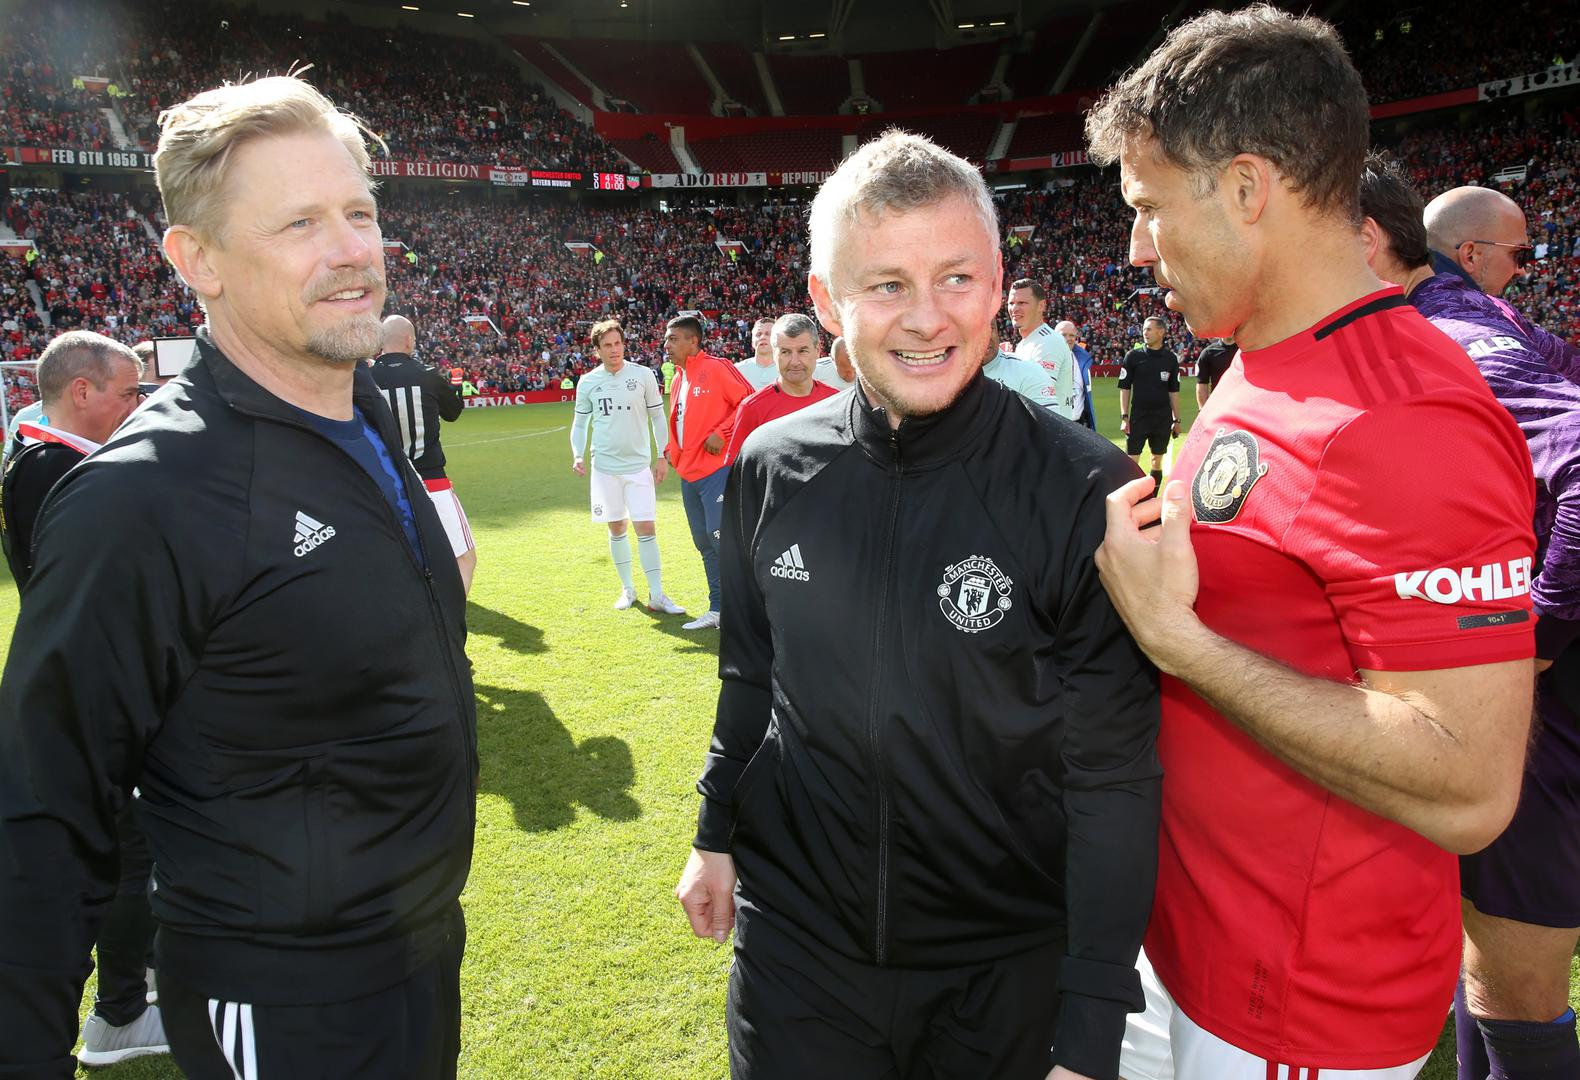 Peter Schmeichel, Ole Gunnar Solskjaer and Ronny Johnsen.